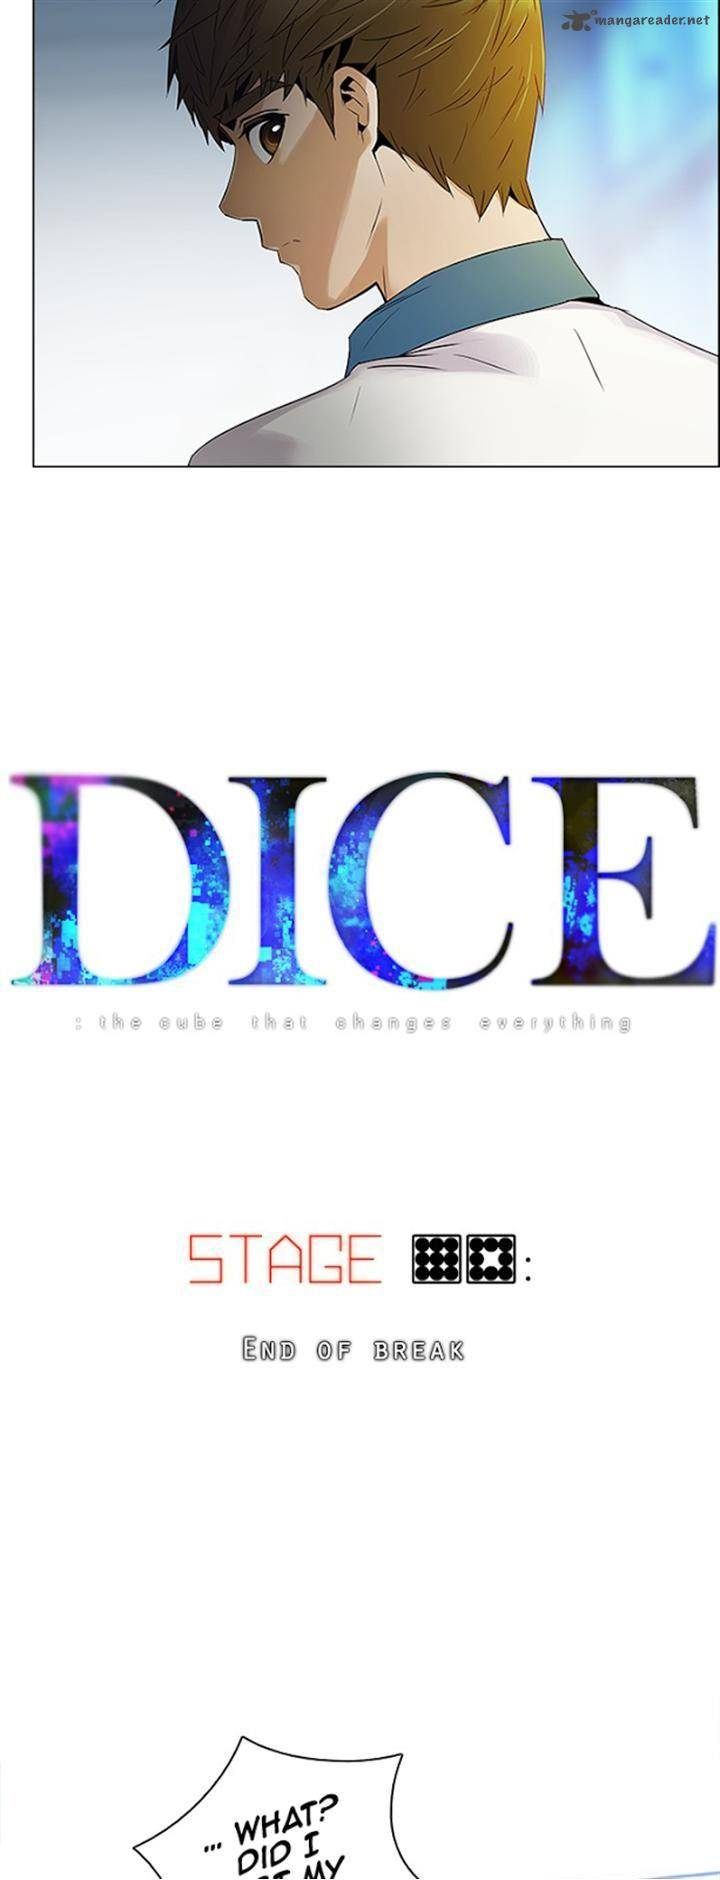 dice_the_cube_that_changes_everything_98_3